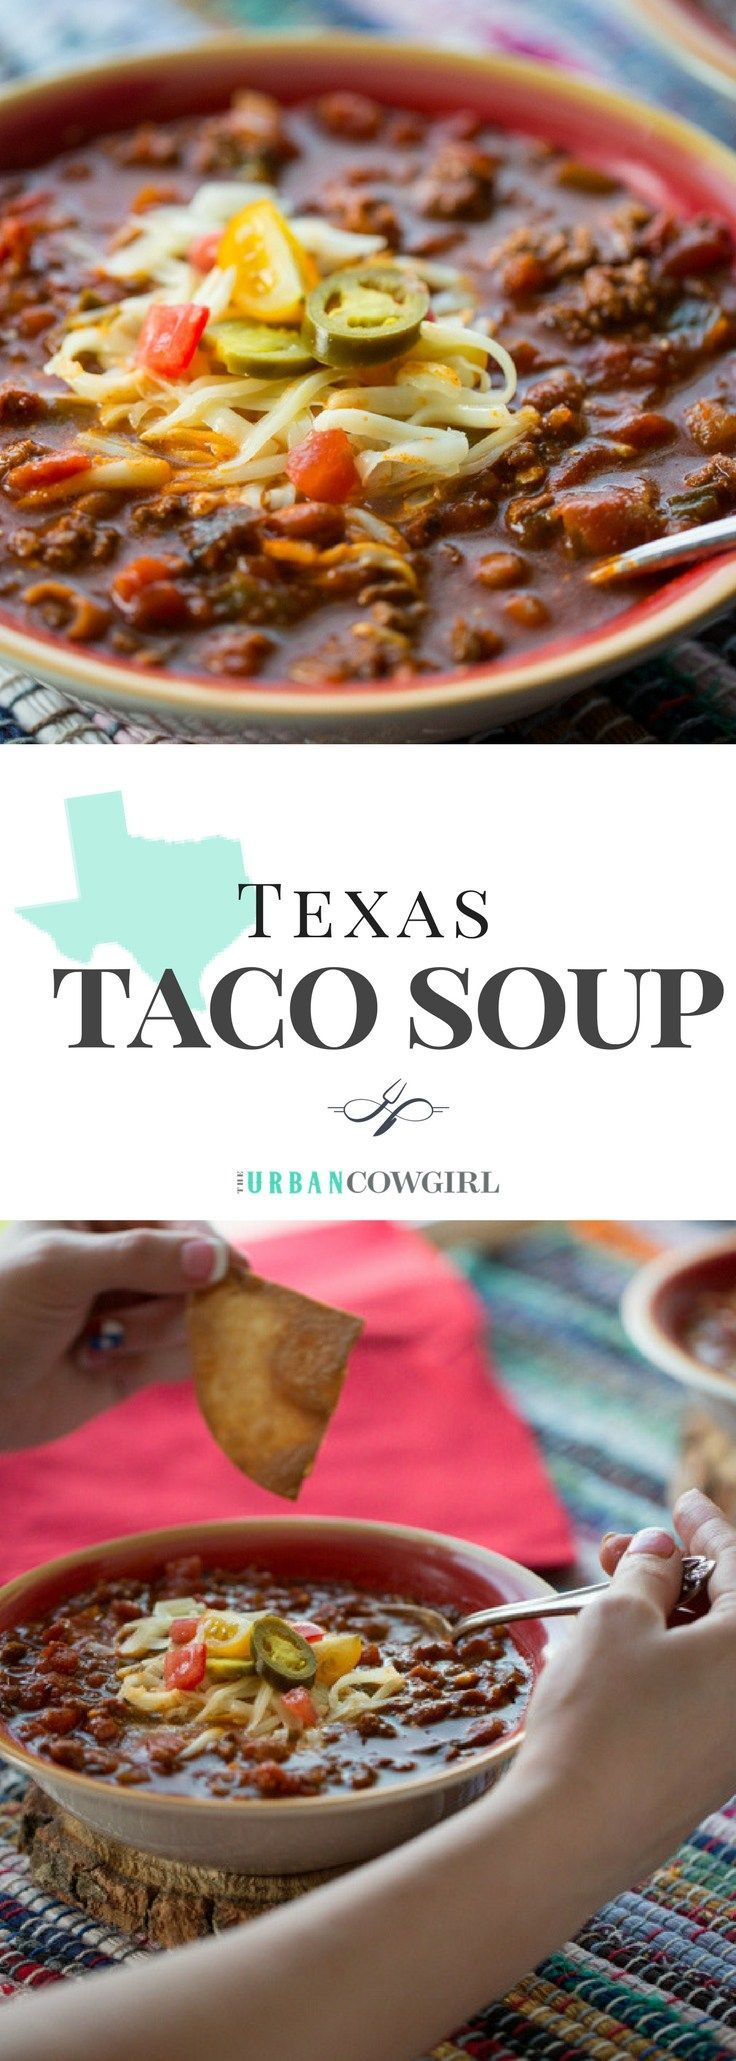 Texas Taco Soup is a warm and hearty dish to satisfy your cravings at the end of a cold day. Top with all of your favorite taco toppings for a dish thats ready in 30 minutes and costs pennies to make! Get the recipe now! --> www.urbancowgirllife.com/texas